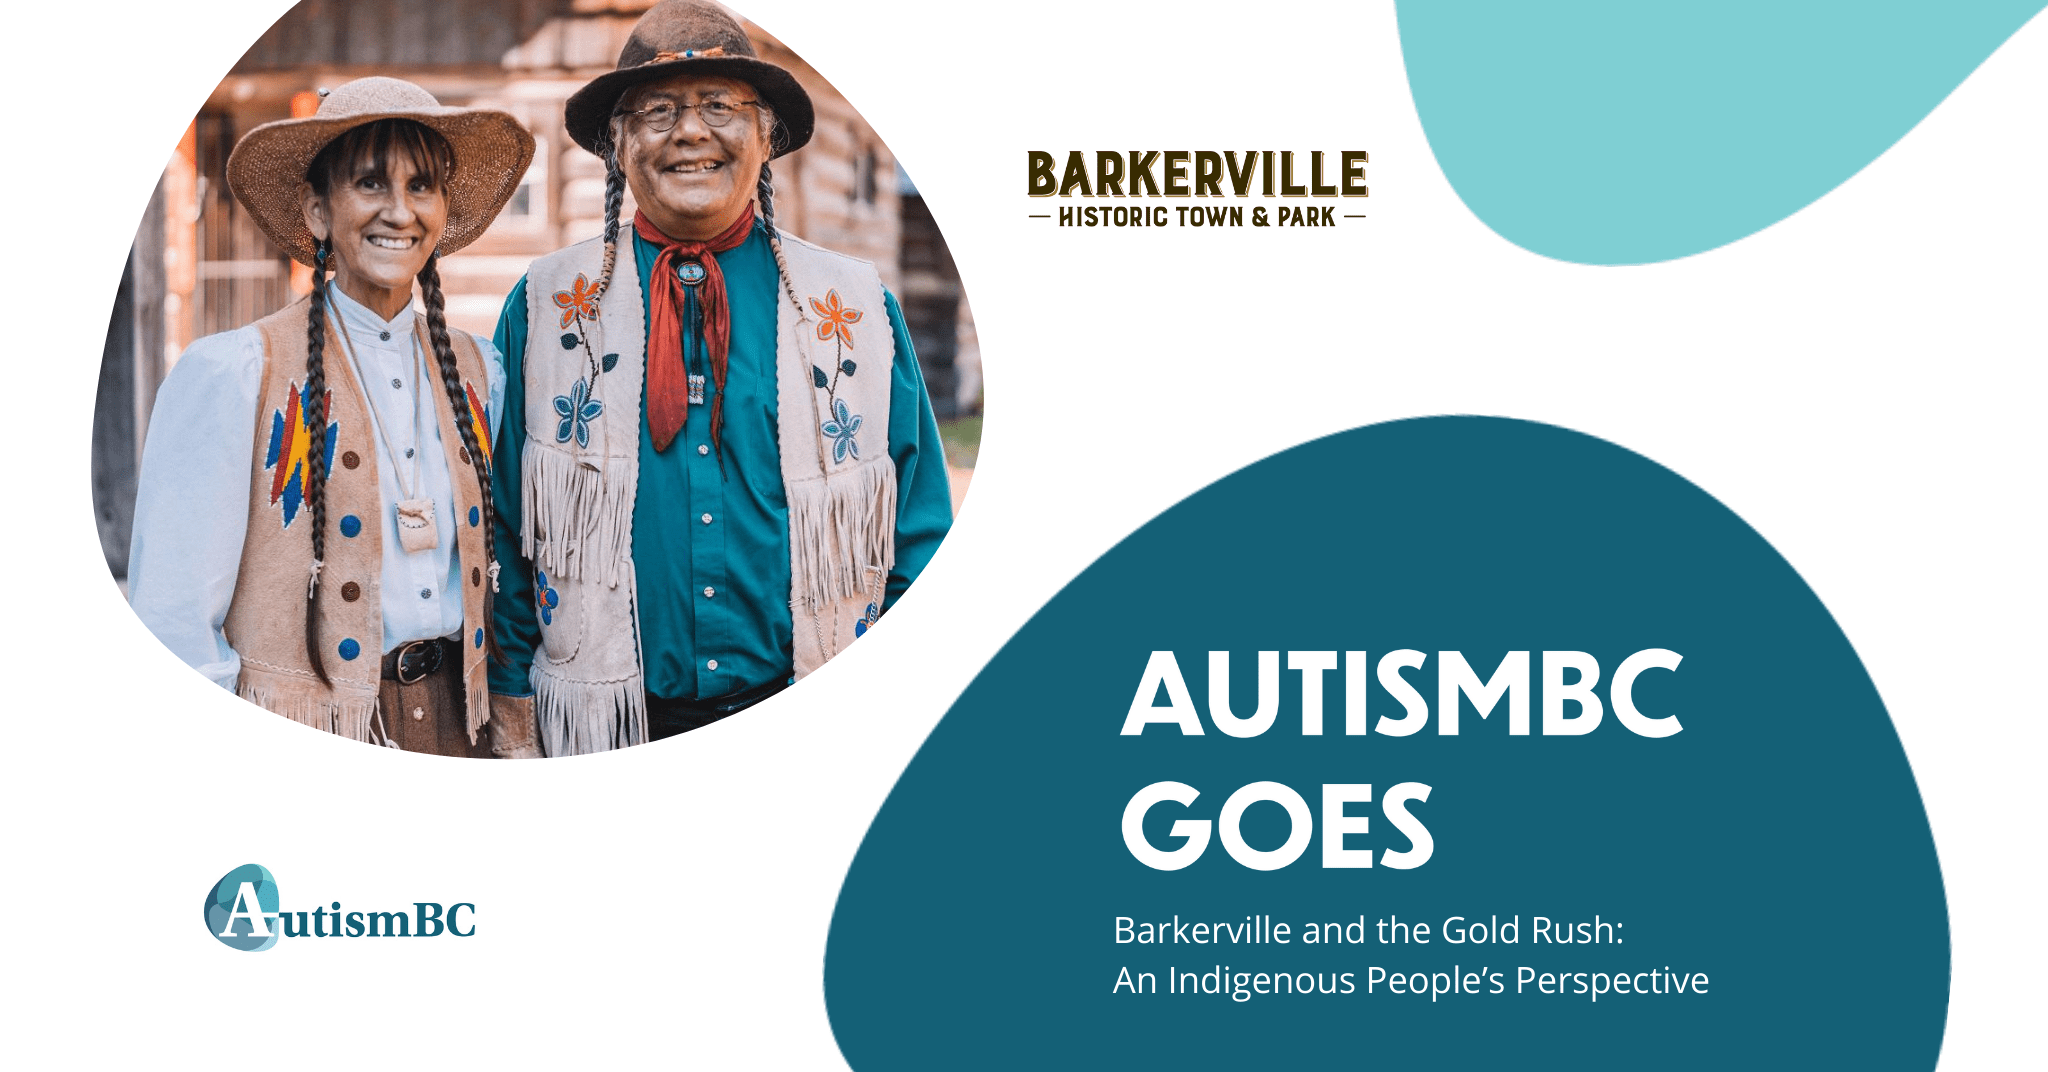 AutismBC Connects Goes to Barkerville and the Gold Rush: An Indigenous People's Perspective